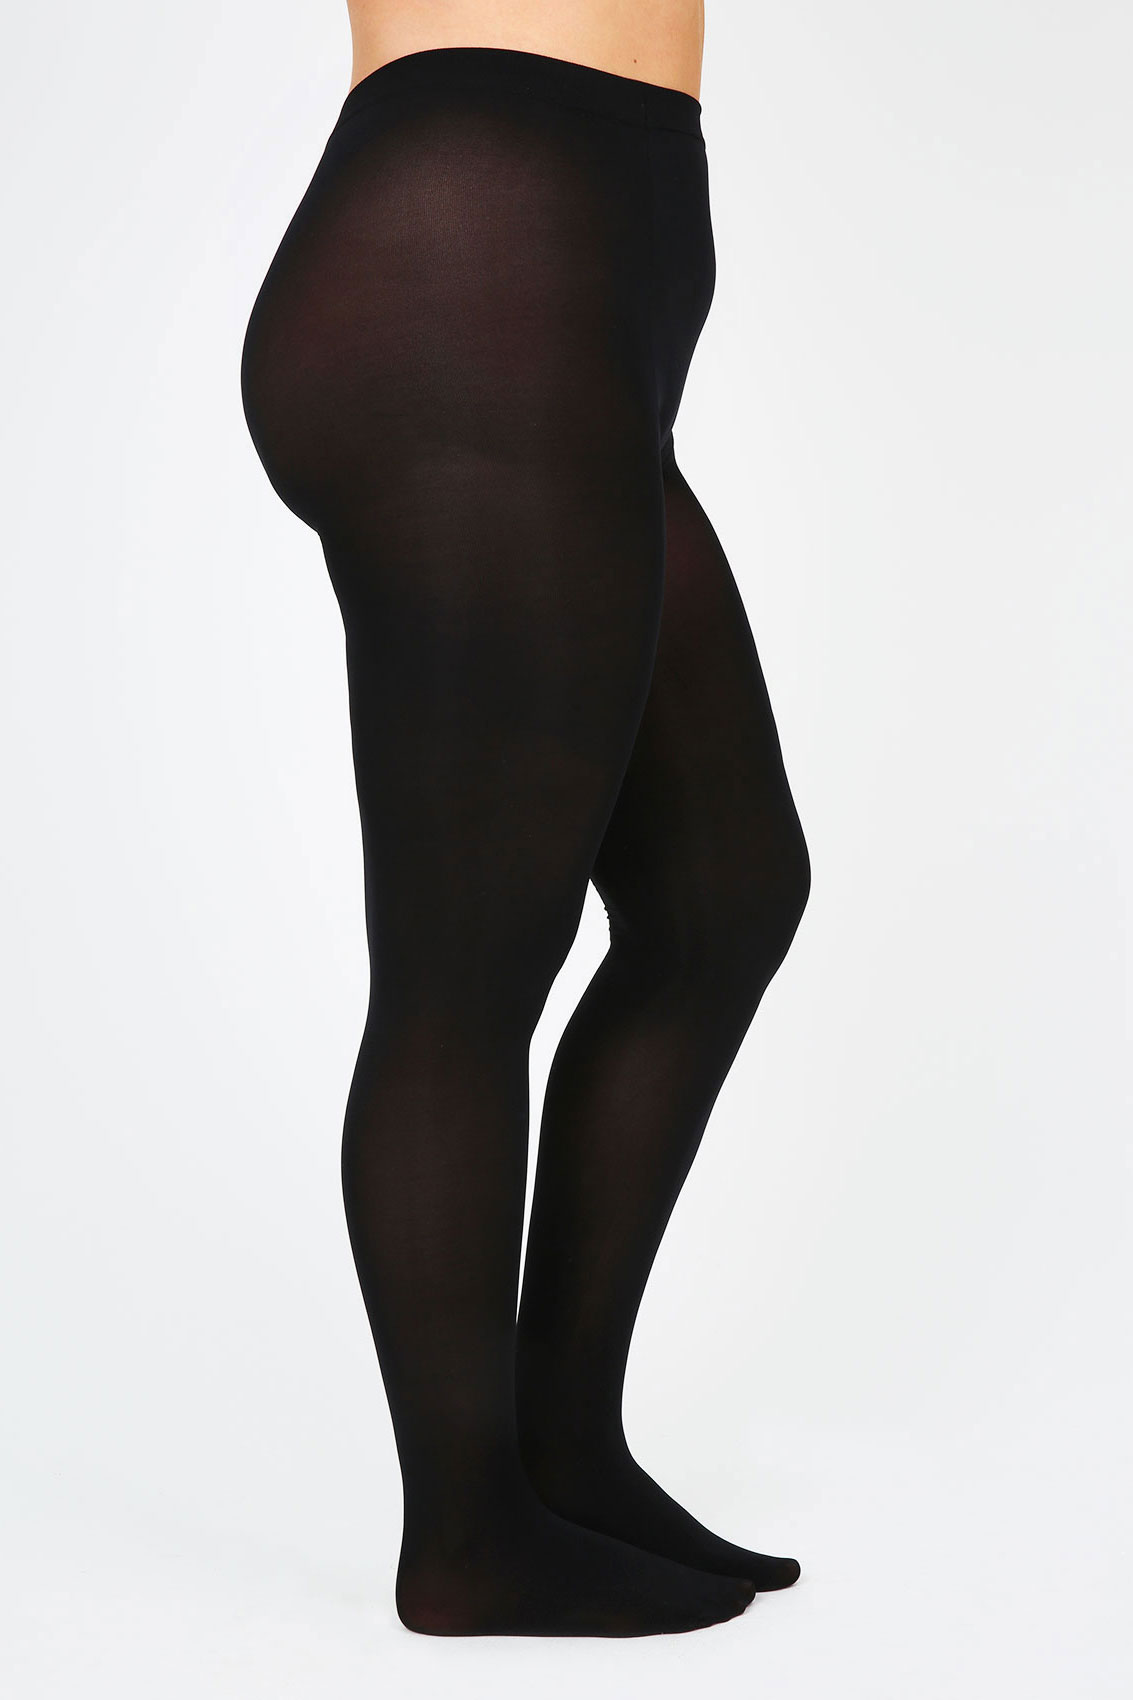 Shop for opaque tights online at Target. Free shipping on purchases over $35 and save 5% every day with your Target REDcard.